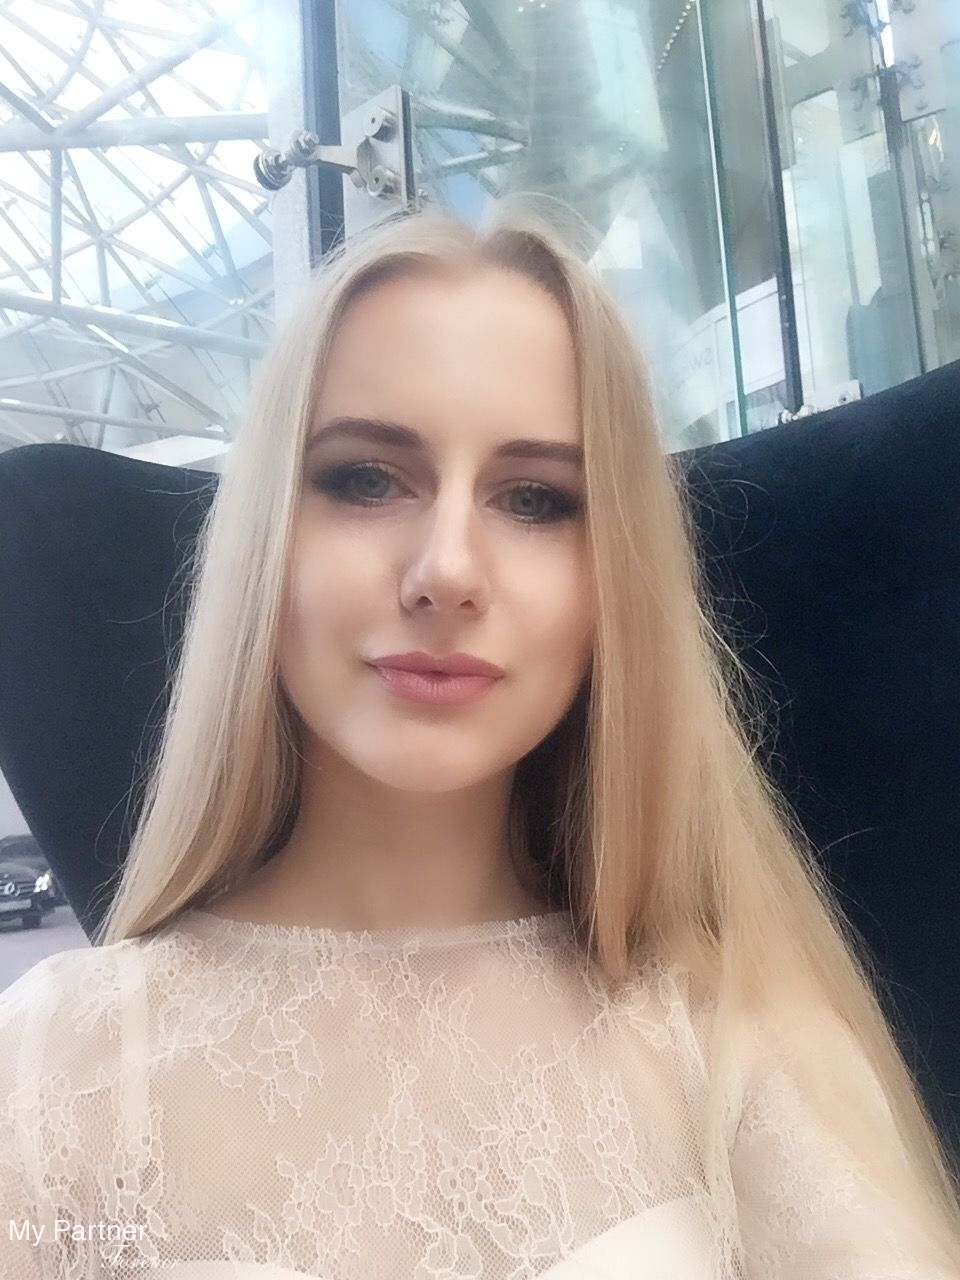 from meeting russian woman Want a real encounter with a russian woman visit privetvip after this first phase of instant messaging, you can arrange a face to face meeting.